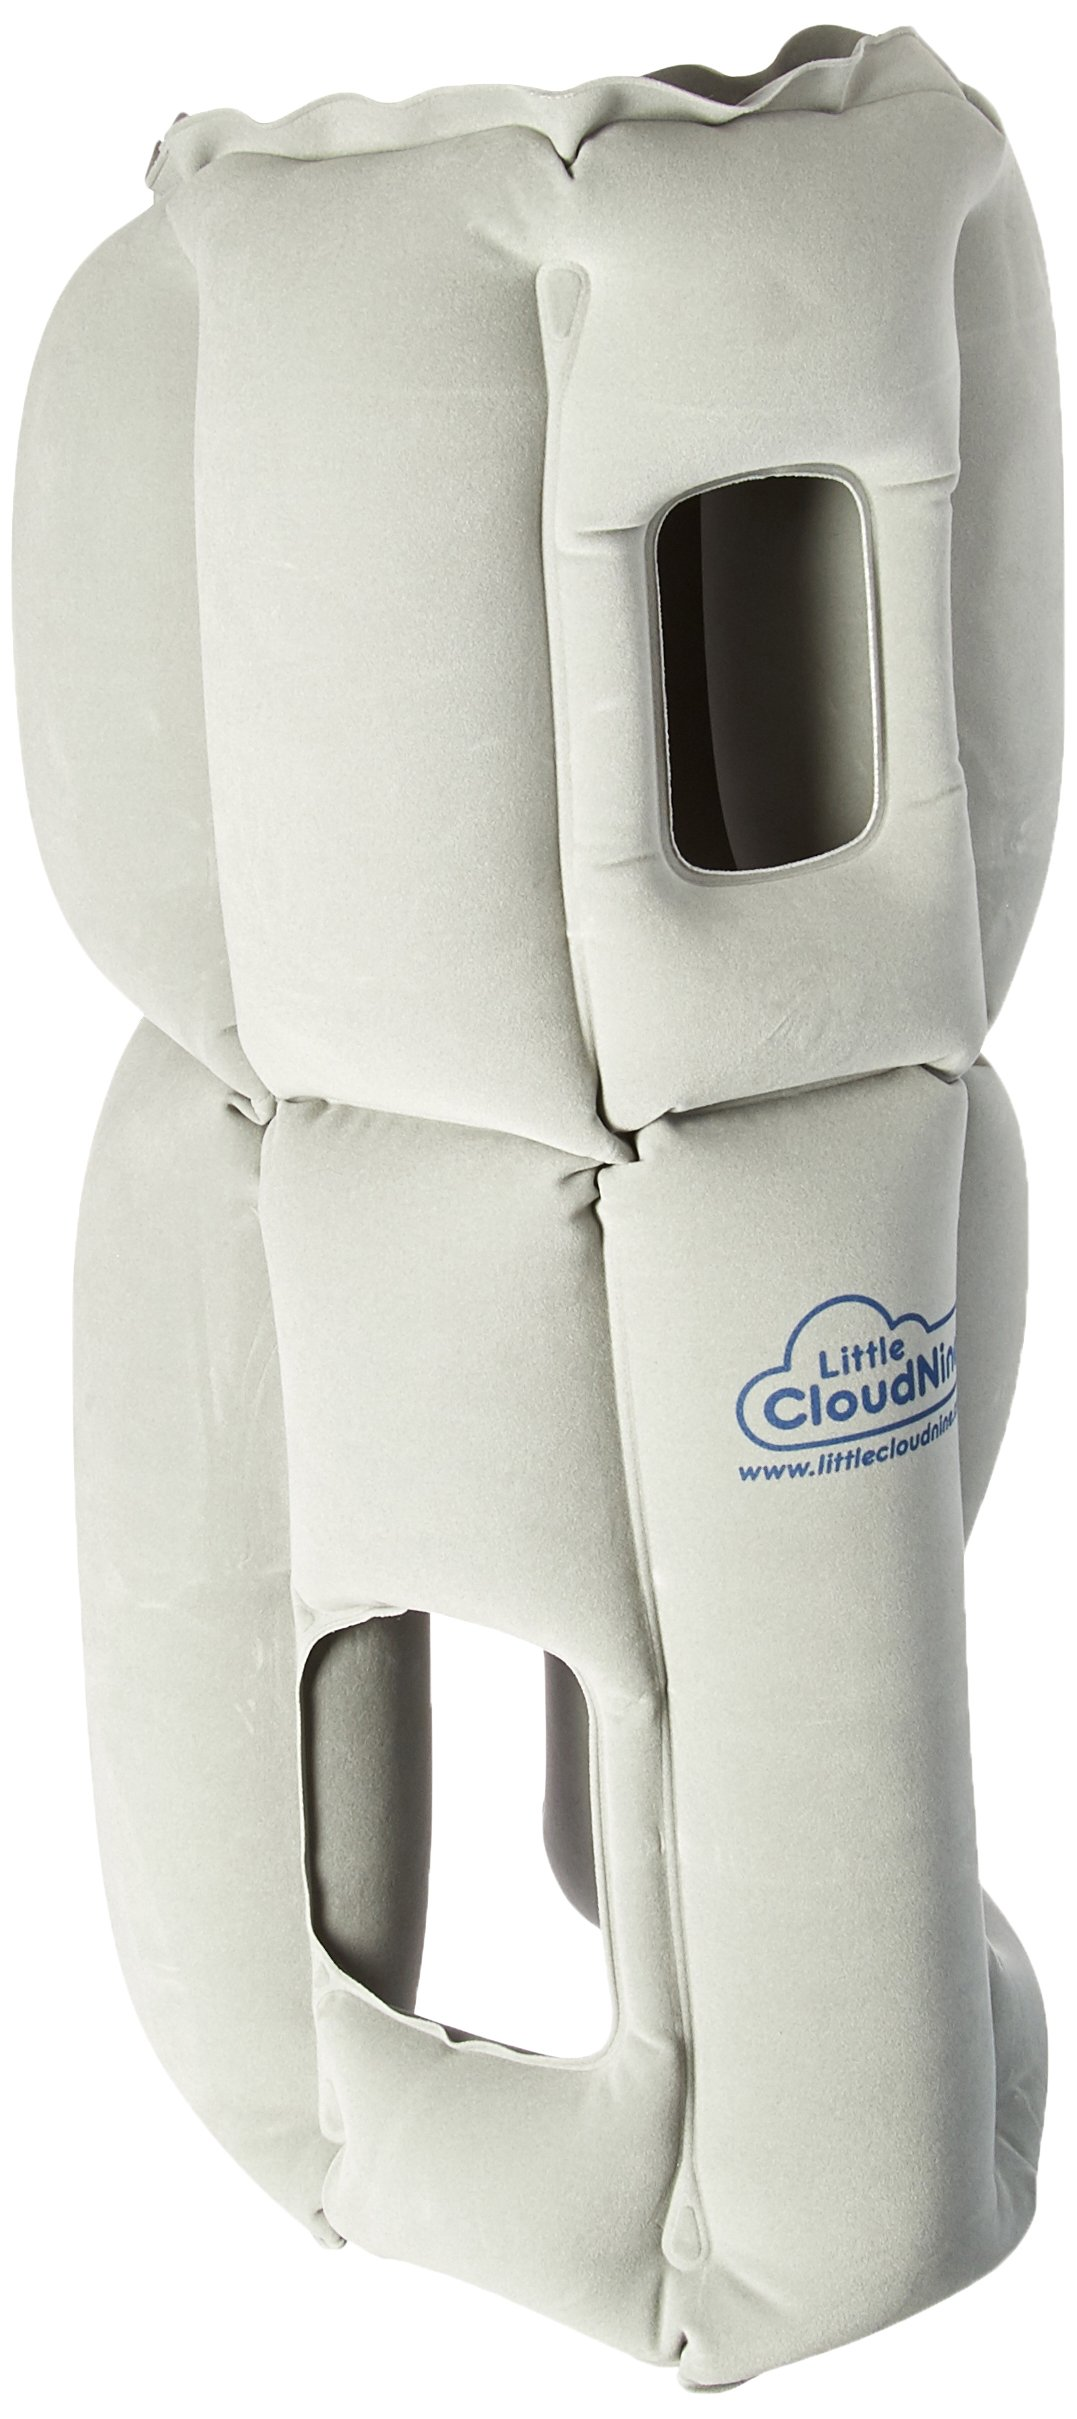 Travel Pillow by Little Cloud Nine - The Best Travel Pillow for Long Distance Flights, Trips & More - Makes Coach Sleep Like First Class (Large)